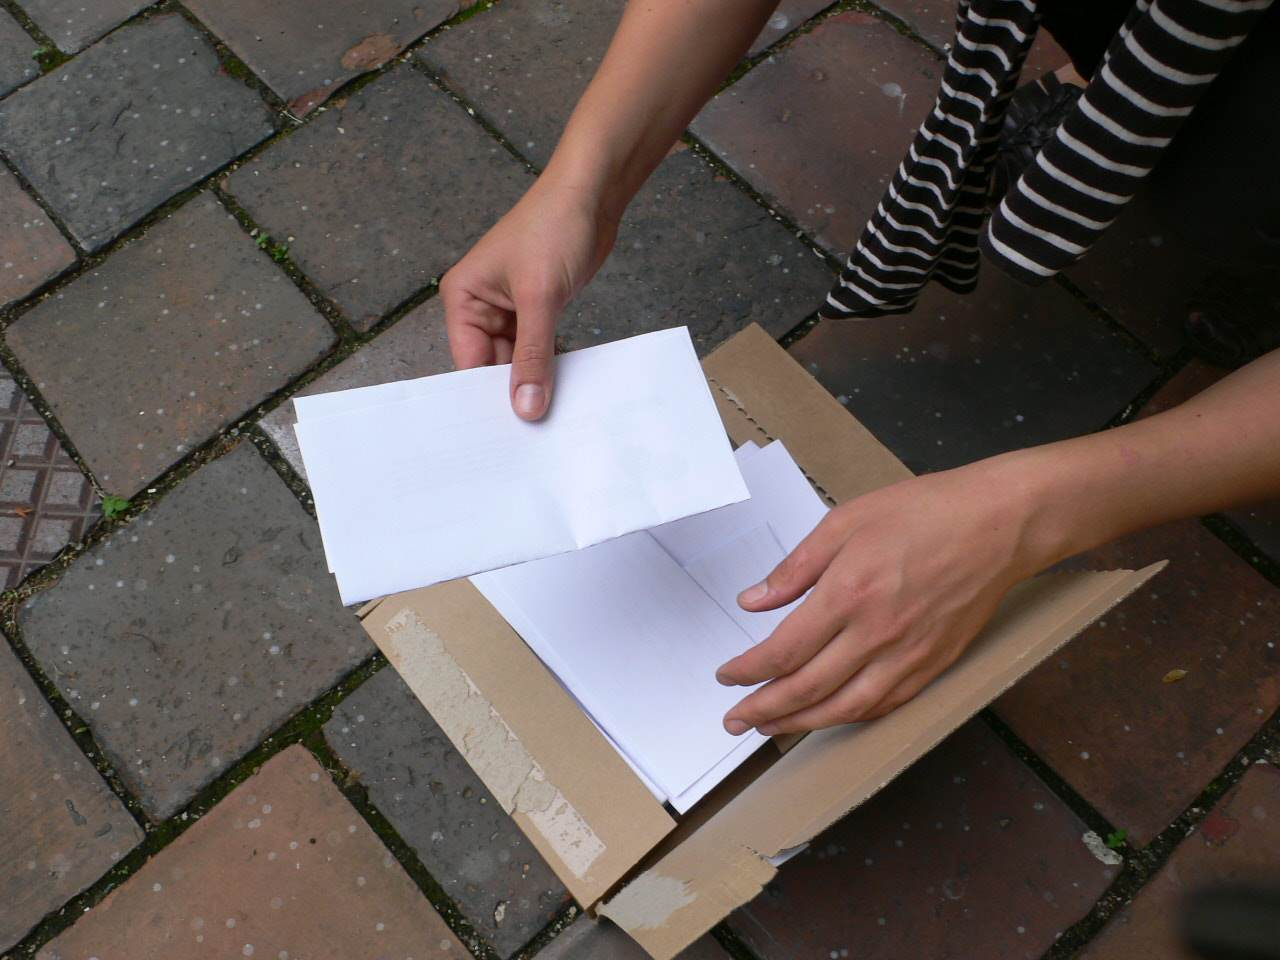 Ziehen des/der Gewinner/in / Drawing The Name Out Of The Box